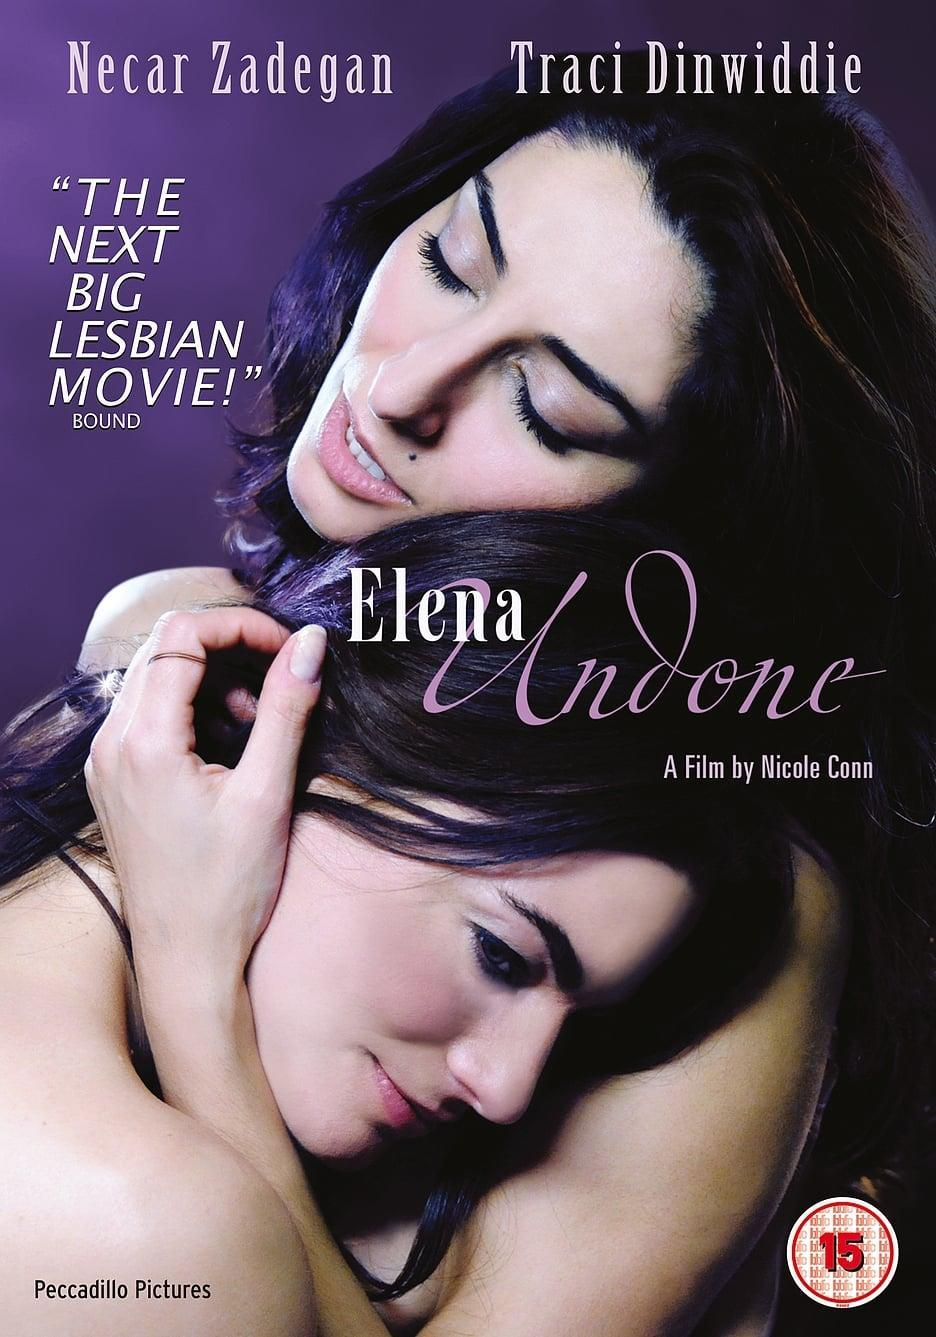 "<p>In <strong>Elena Undone</strong>, a pastor's wife and a lesbian writer form a tight bond and engage in a lustful affair. It's hot, sexy, and very alluring.</p> <p><a href=""https://www.hulu.com/movie/elena-undone-24515dbf-8959-4526-b2d0-fbce72bf3aeb"" class=""link rapid-noclick-resp"" rel=""nofollow noopener"" target=""_blank"" data-ylk=""slk:Watch Elena Undone on Hulu now."">Watch <strong>Elena Undone</strong> on Hulu now.</a></p>"